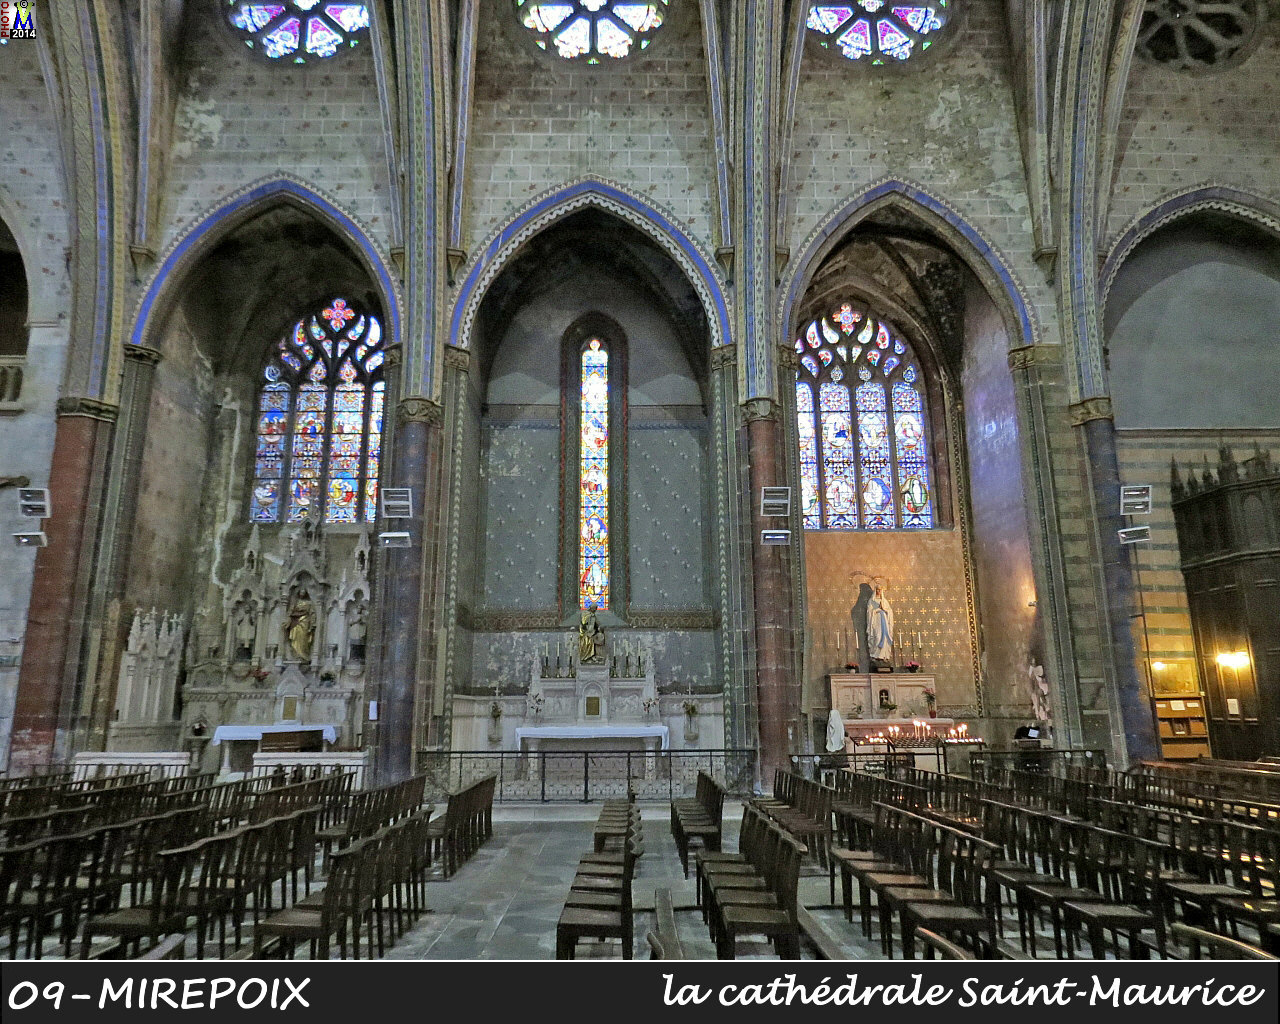 09MIREPOIX_cathedrale_224.jpg